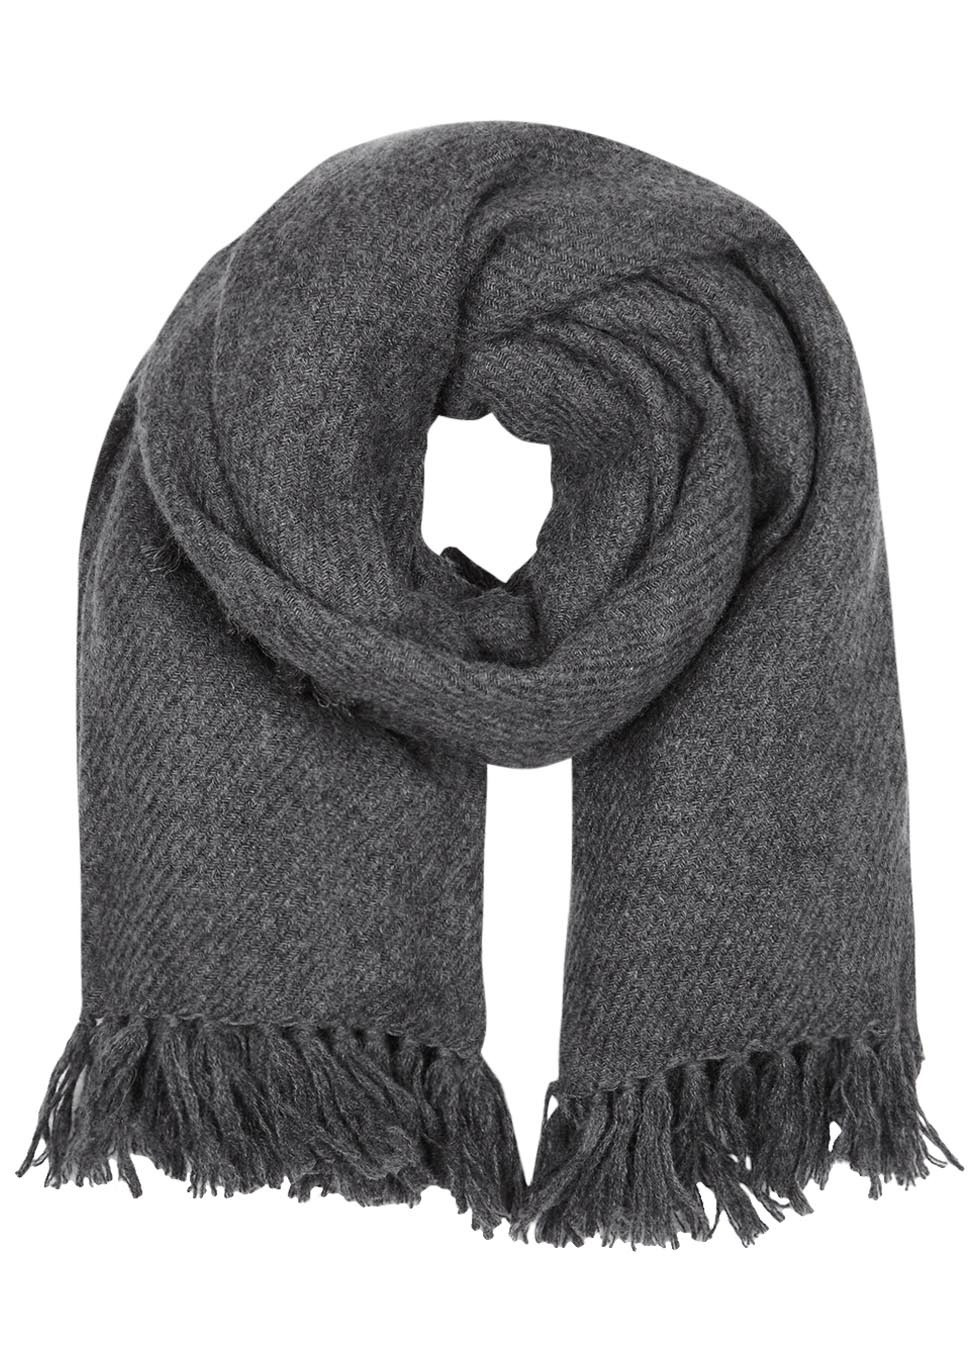 Zila Dark Grey Fringed Cashmere Blend Scarf - predominant colour: charcoal; occasions: casual; type of pattern: standard; style: regular; size: standard; pattern: plain; material: cashmere; season: s/s 2016; wardrobe: investment